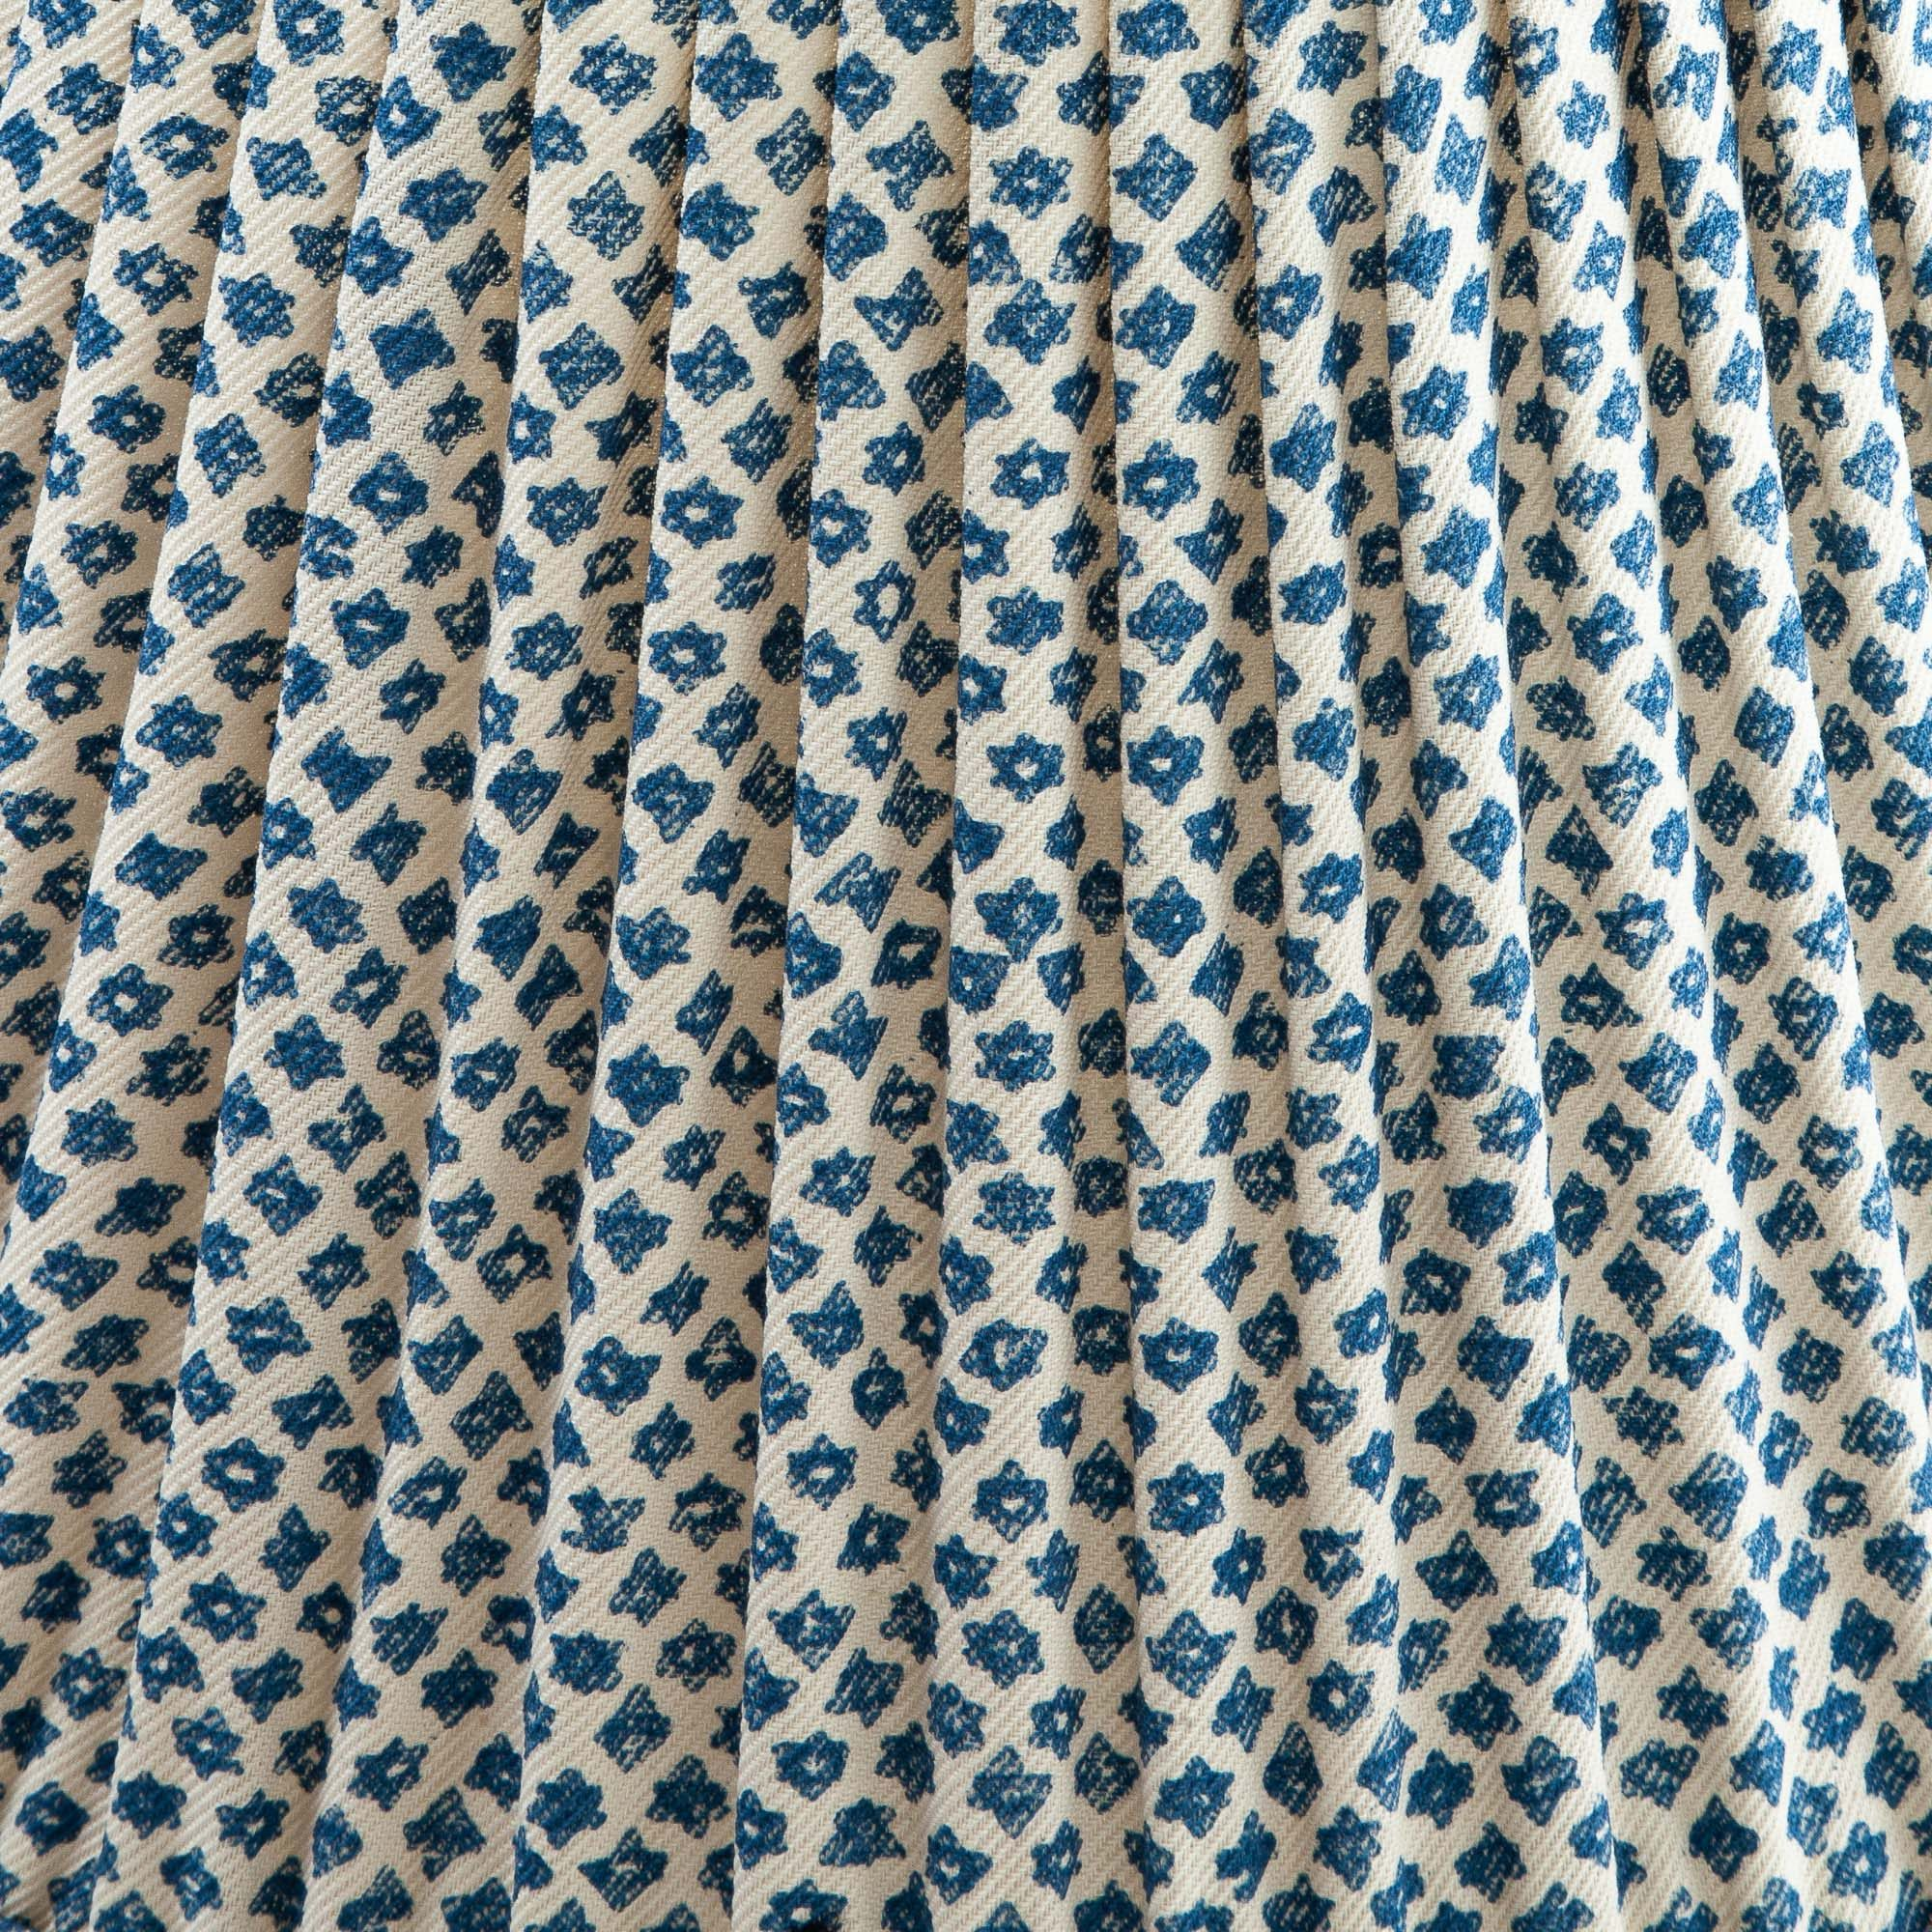 Empire Gathered Lampshade in Blue Marden 019.jpeg